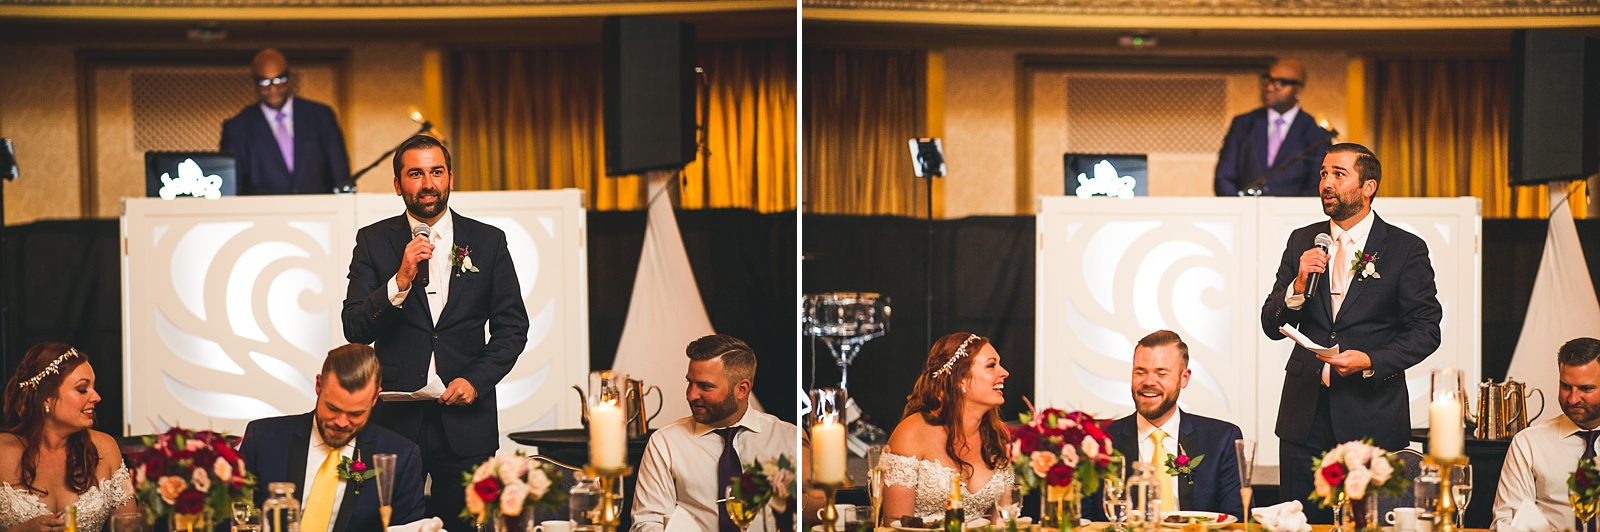 65 best man speech at hilton wedding - Hilton Chicago Wedding Photographer // Sarah + Aaron